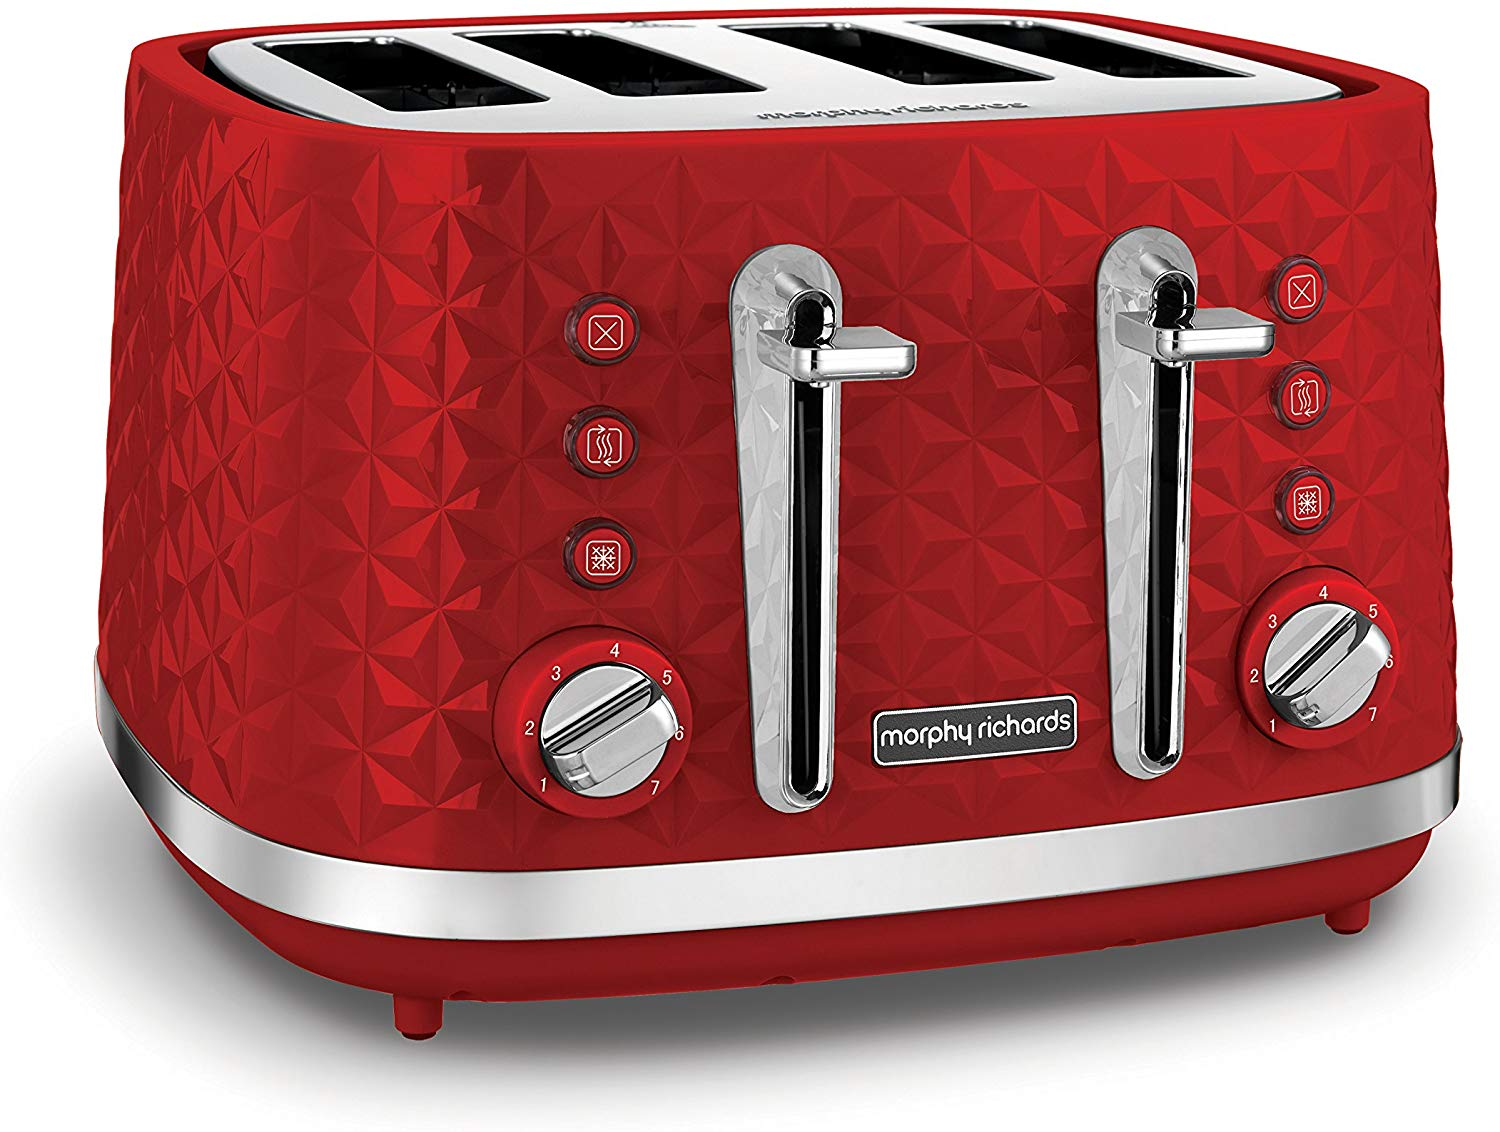 Morphy Richards Vector 4 Slice Toaster £23.31Delivered on Amazon